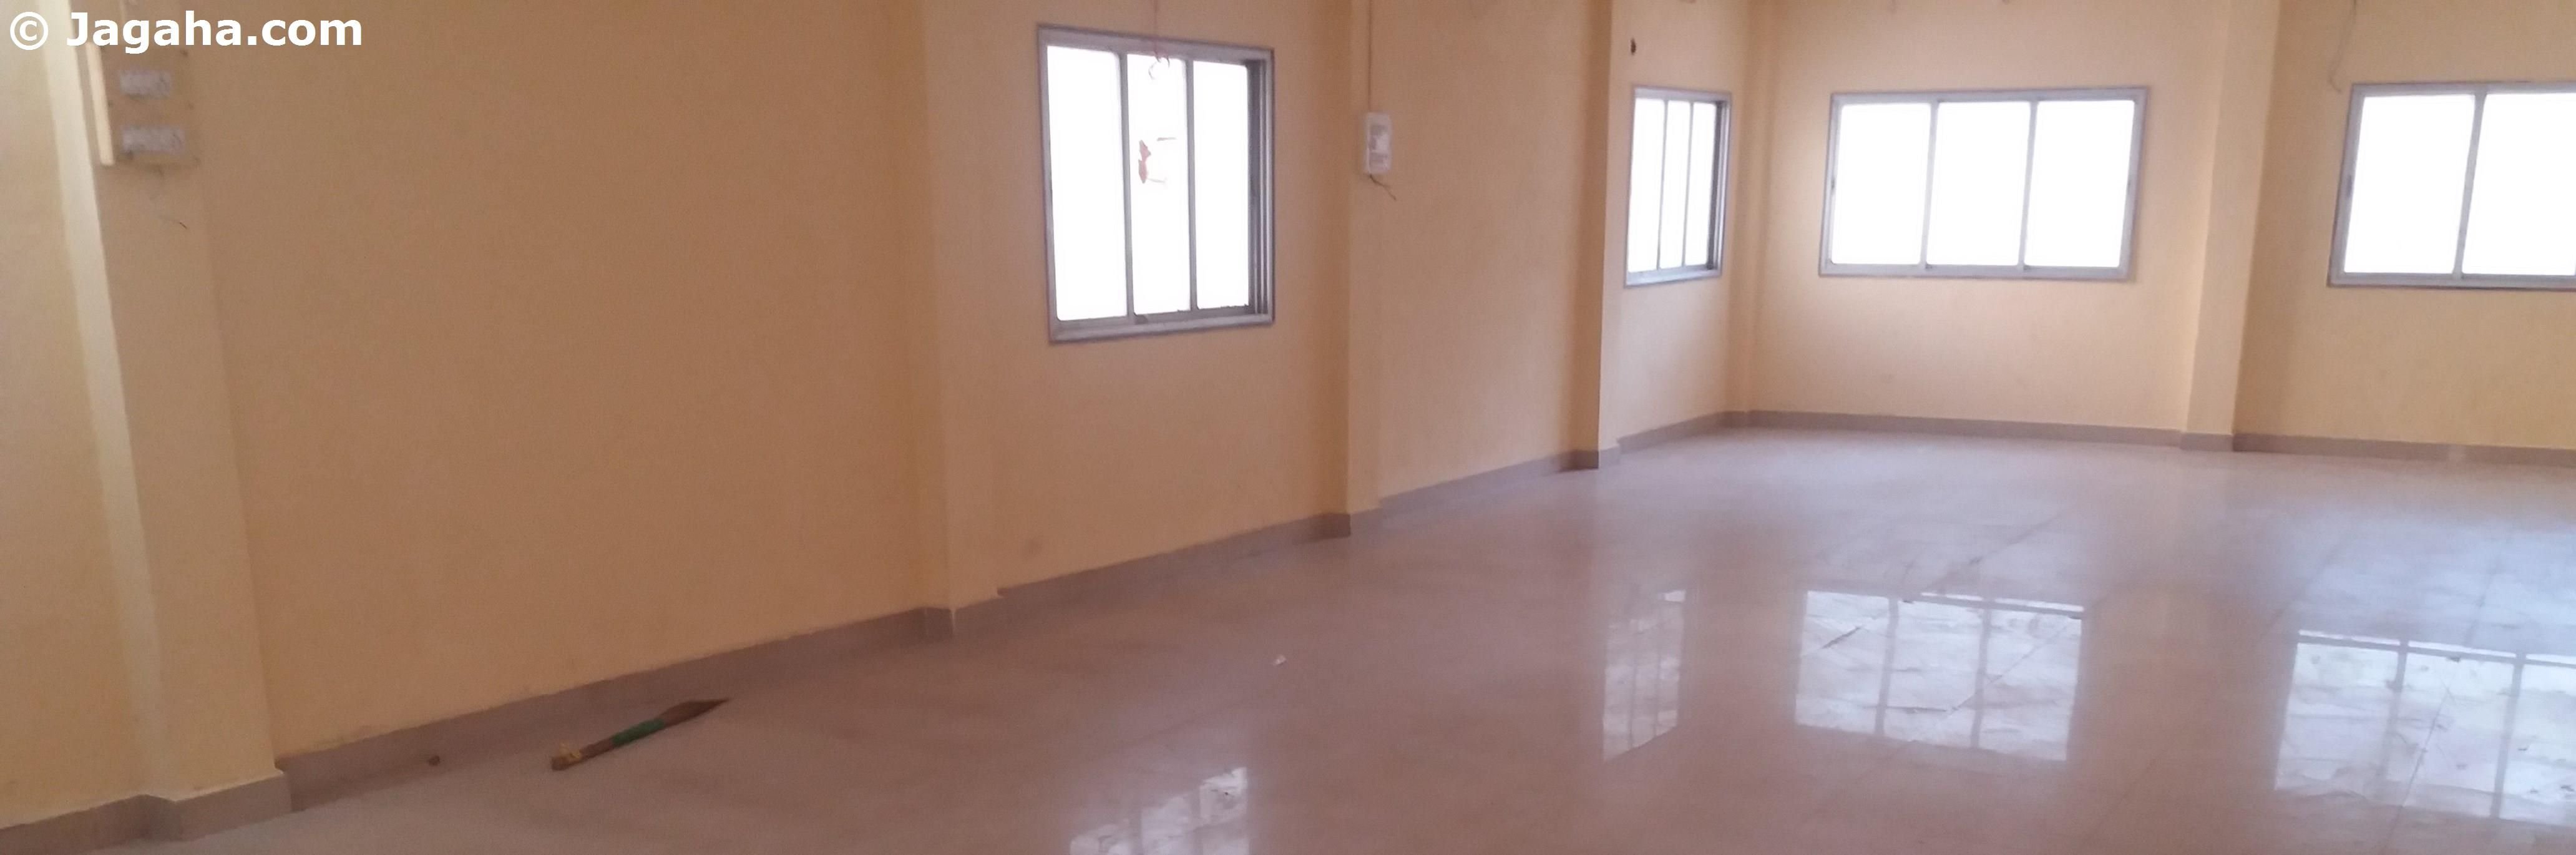 Property And Building Inquire About This Office Space For Rent This Commercial Property Is Available For Rent In Go Modern Office Space Office Space Property